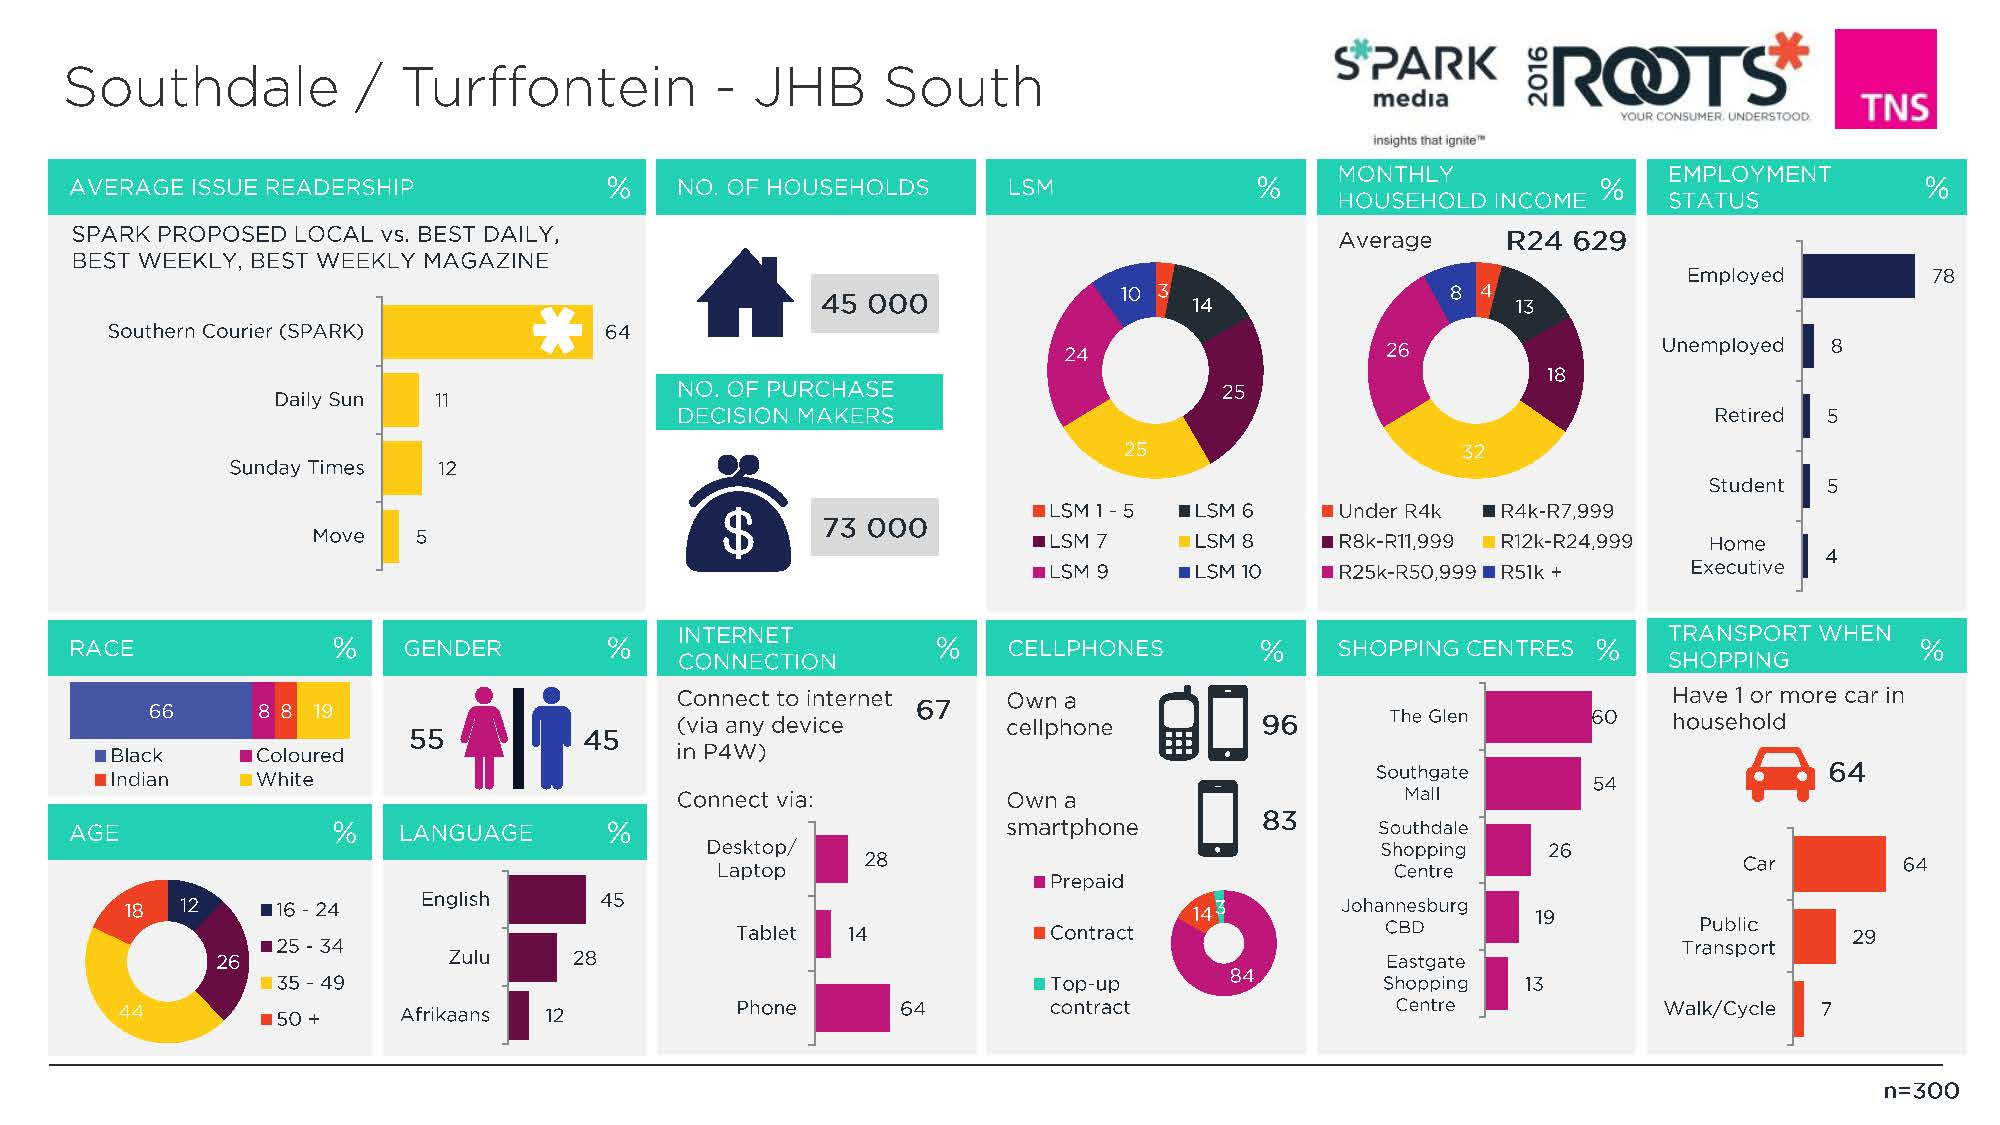 159. Southdale_Turffontein - JHB South (Overview)_Page_1